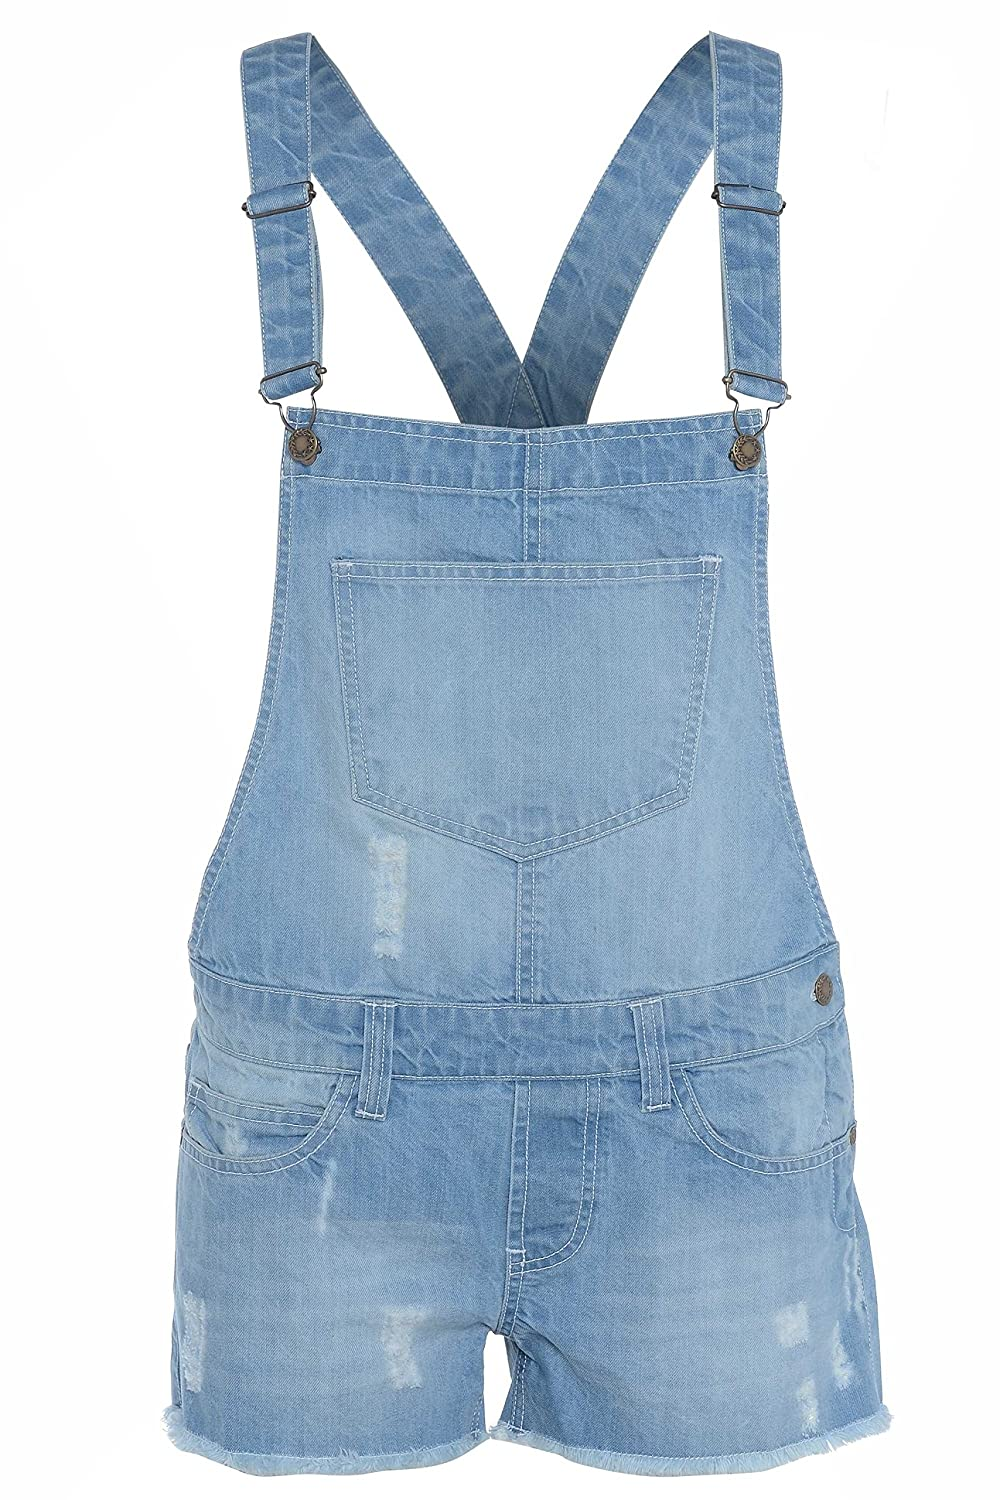 Girls Dungaree 100% Cotton Kids Jeans Denim Shorts Dress Jumpsuits 9-10 Years